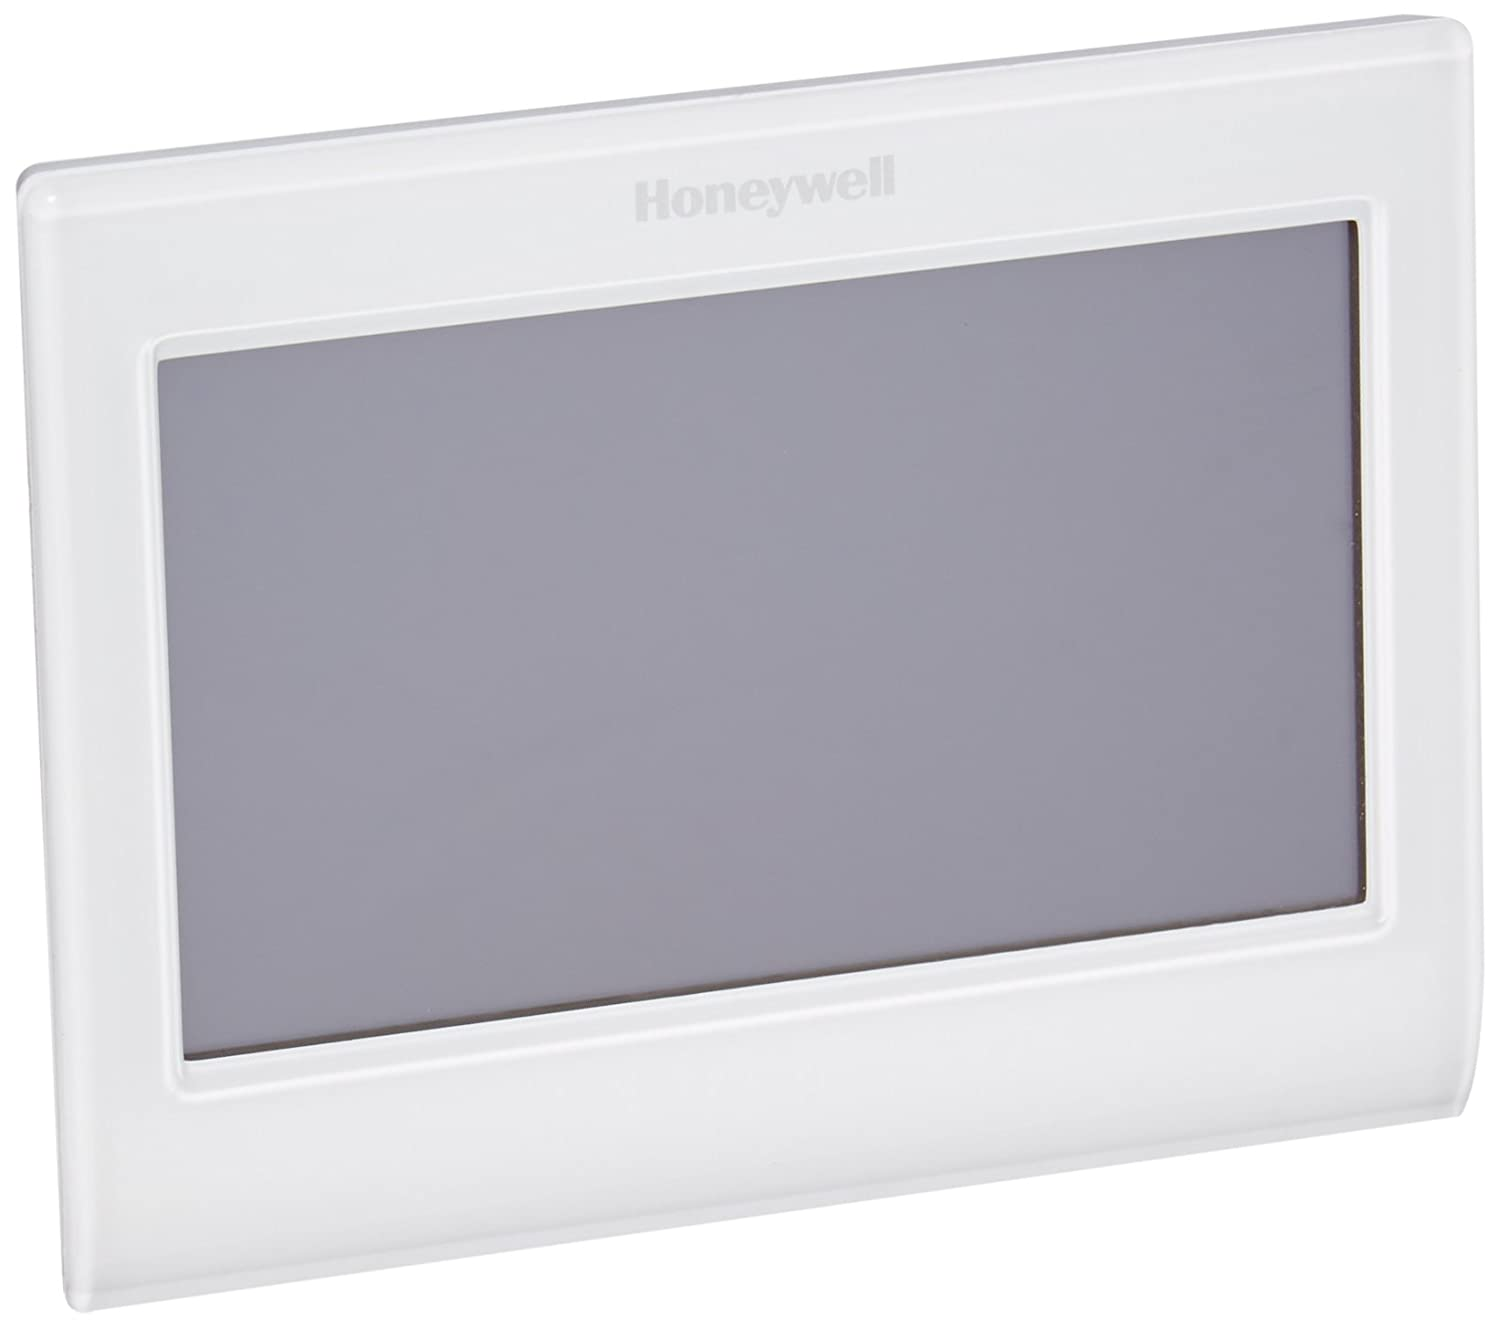 Honeywell TH9320WF5003 Wi-Fi 9000 Color Touchscreen Thermostat